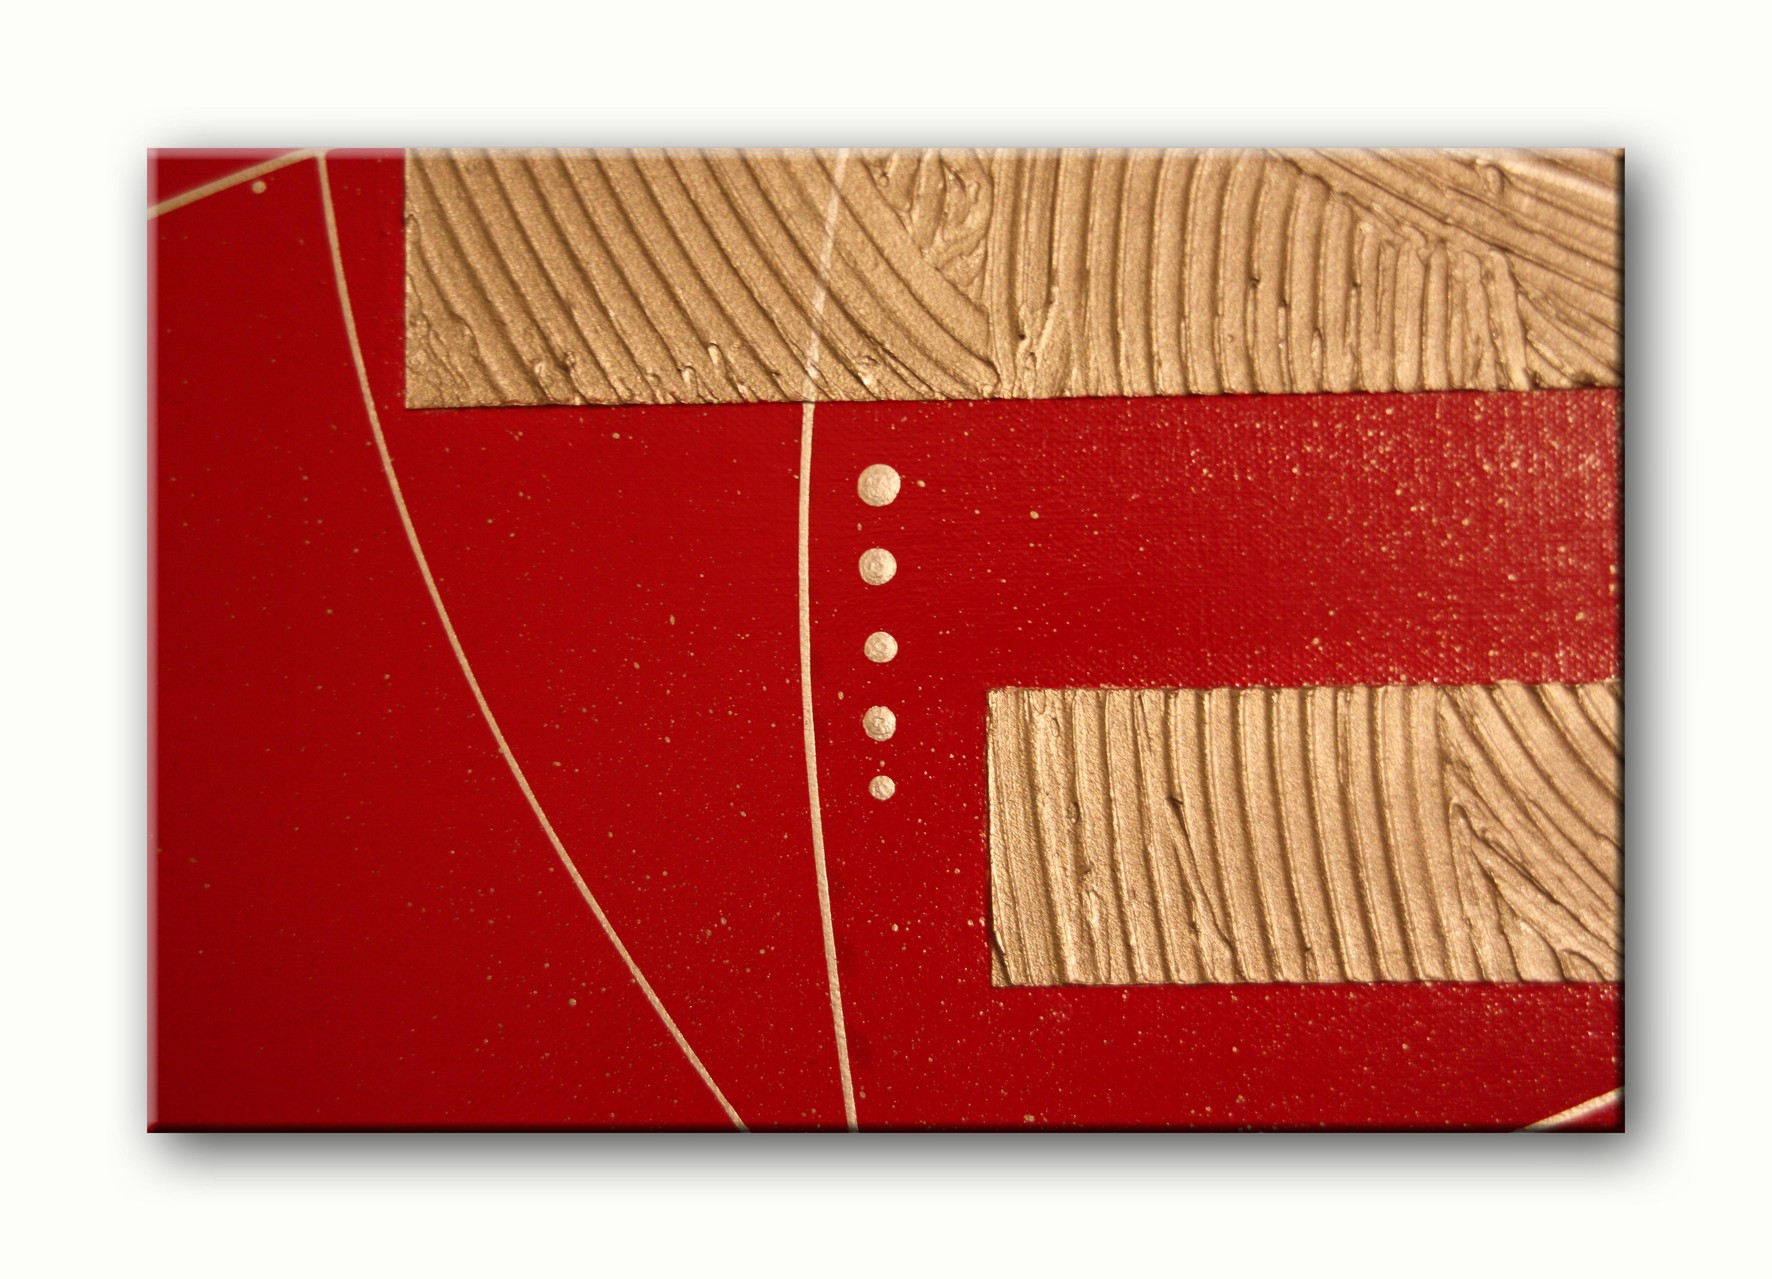 red an gold - detail